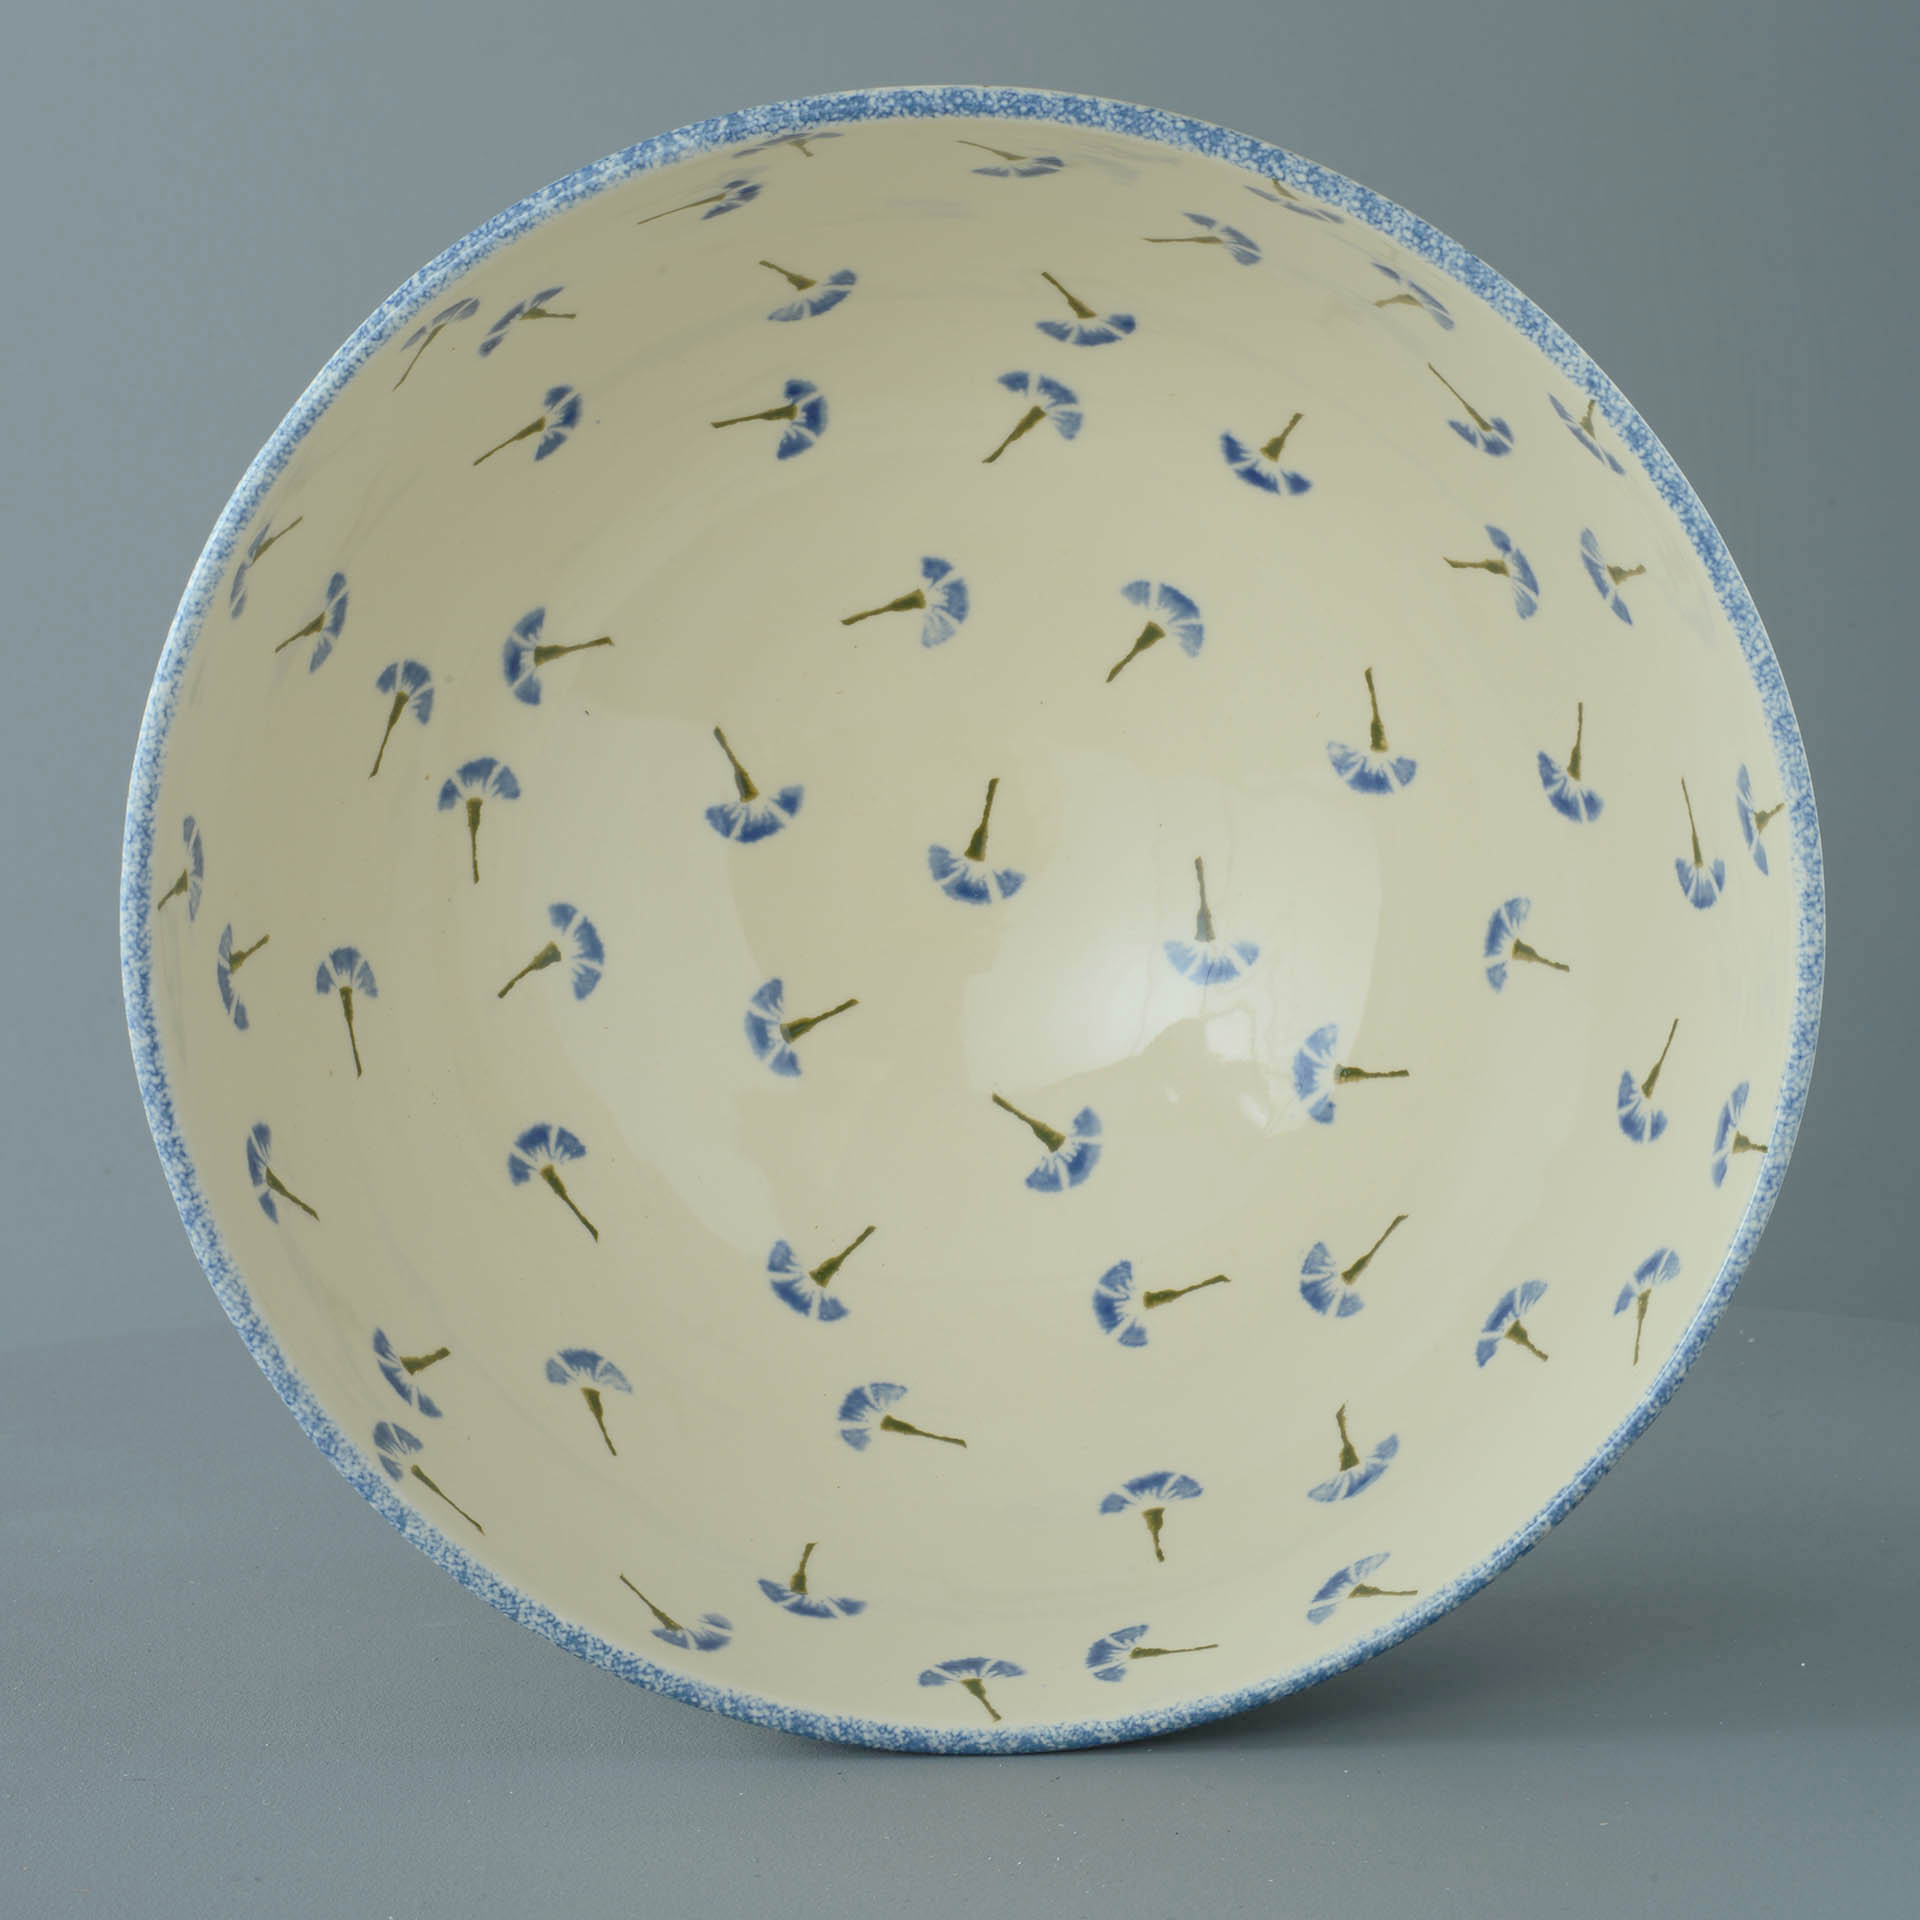 Cornflower Salad Bowl 27.5 (w) x 14.5 (h) cm.